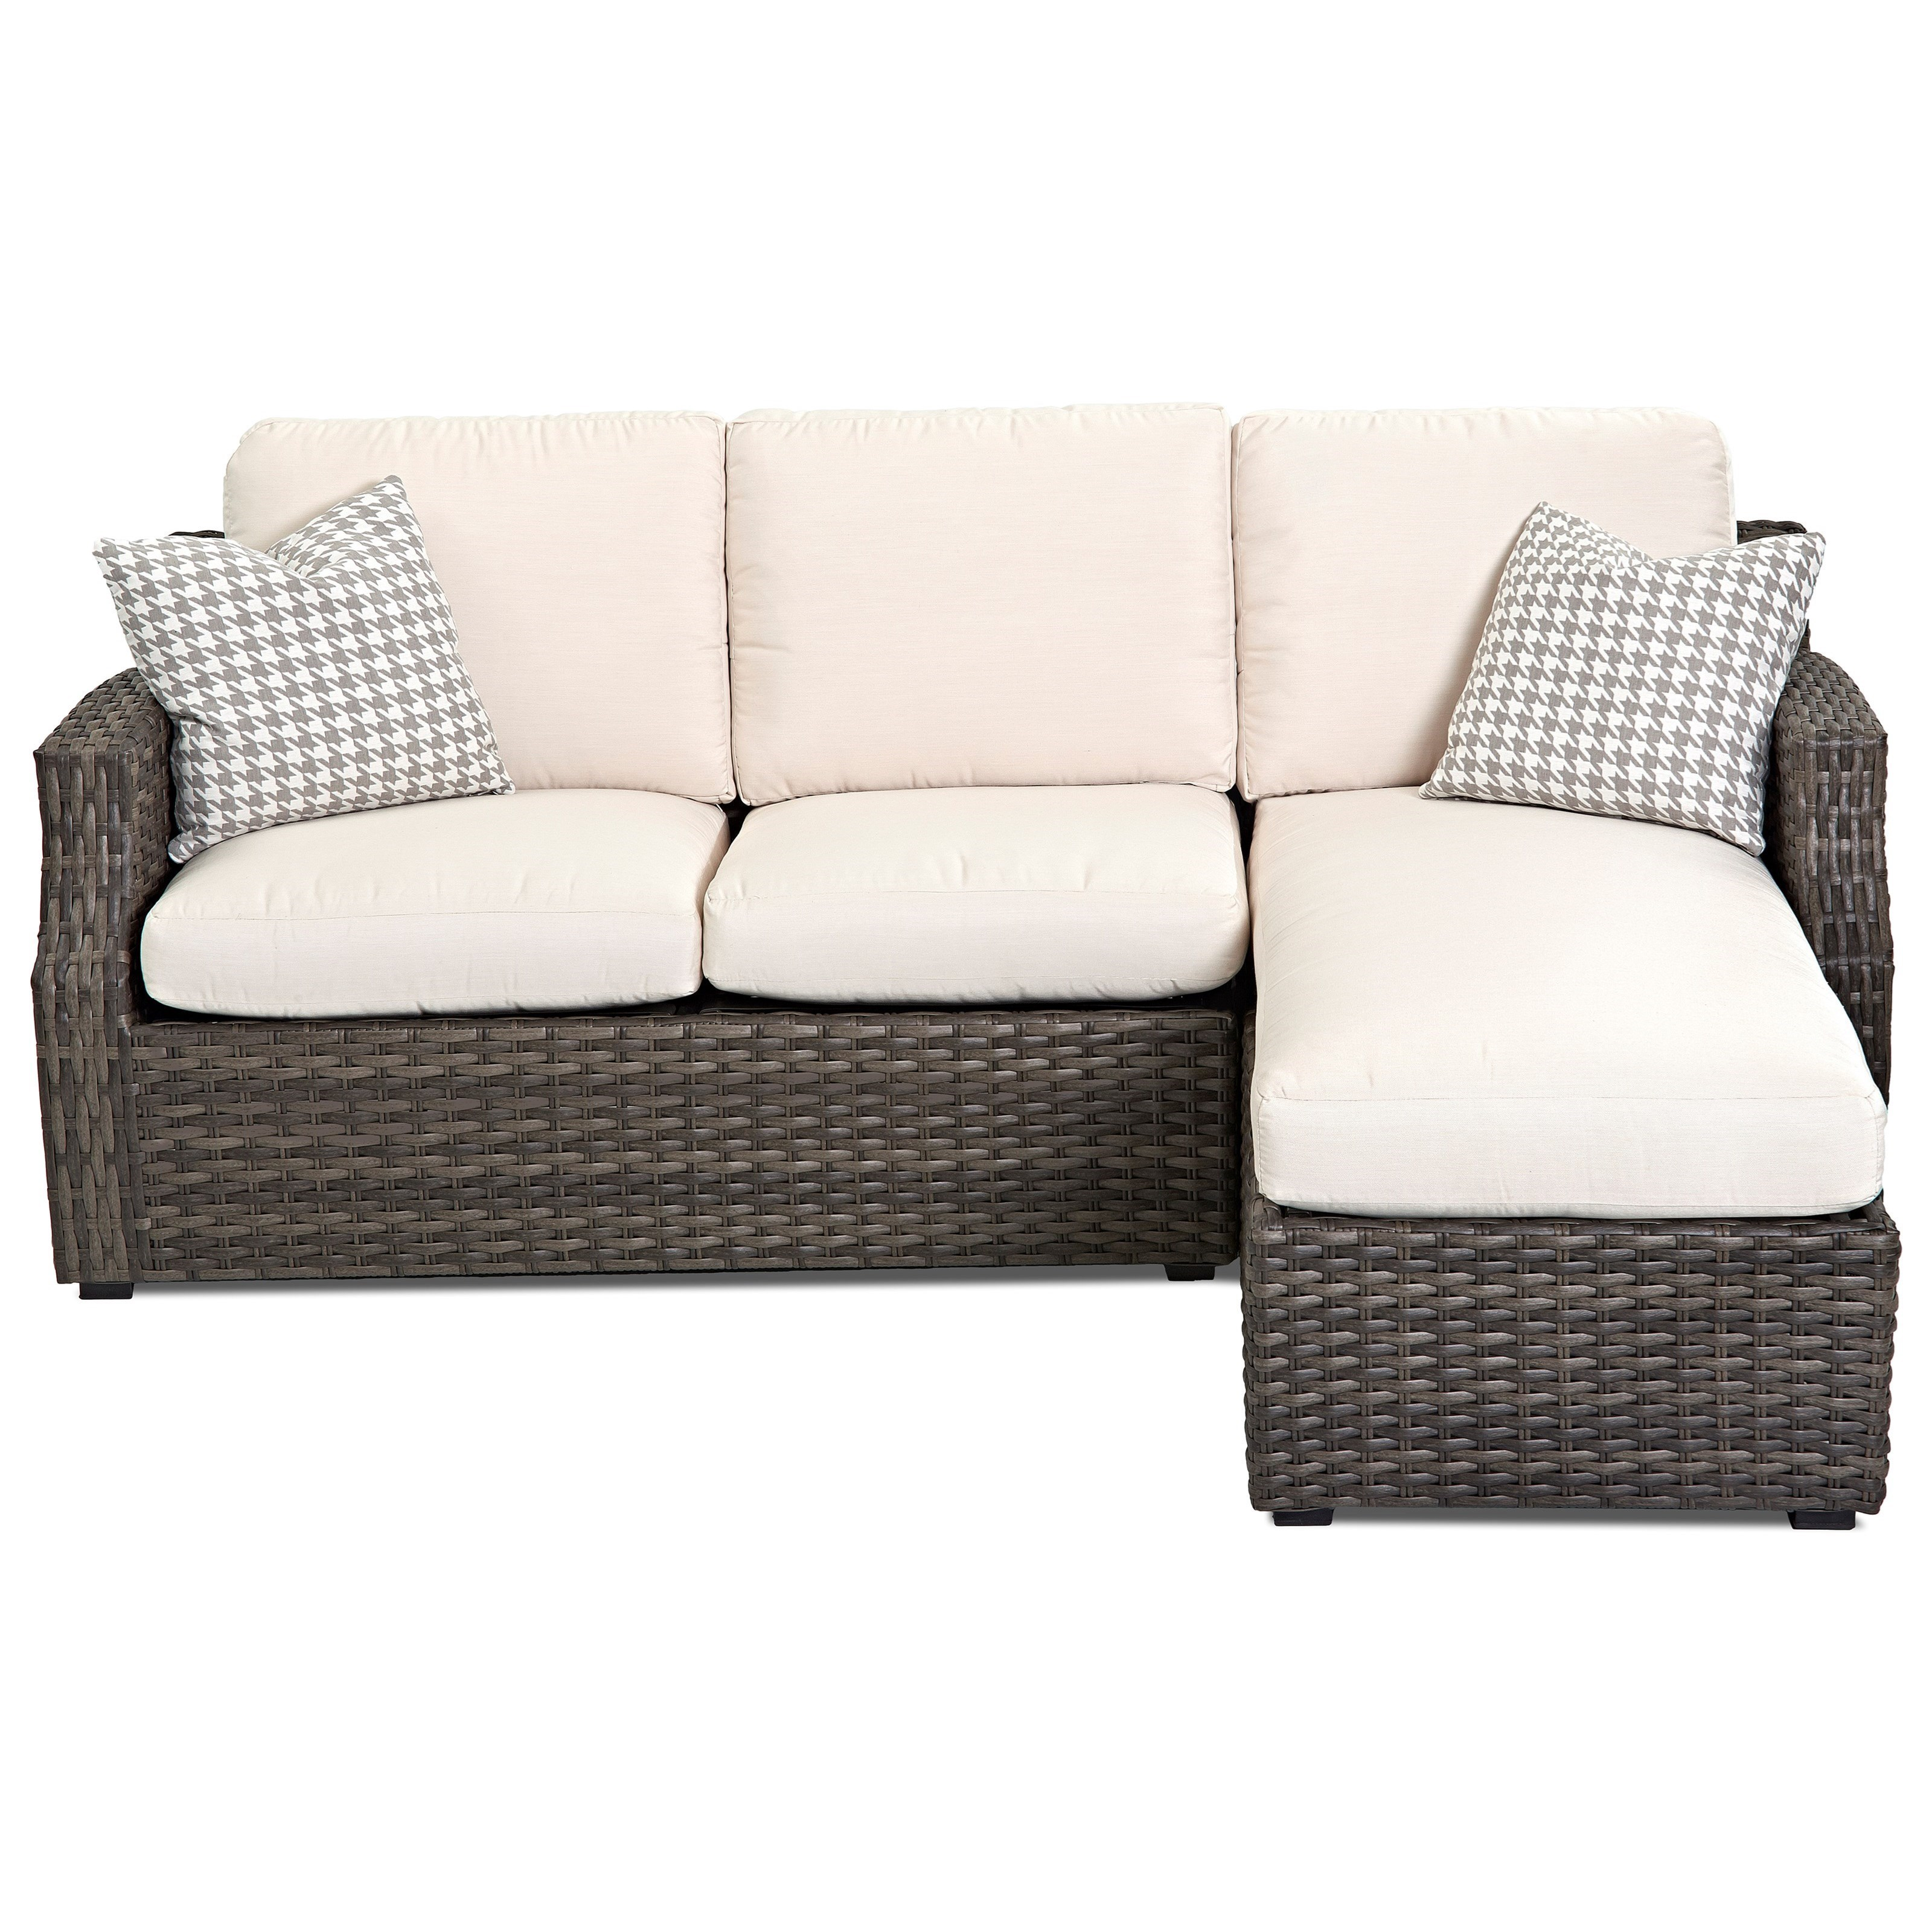 klaussner outdoor cascade outdoor sectional sofa with chaise and drainable cushion